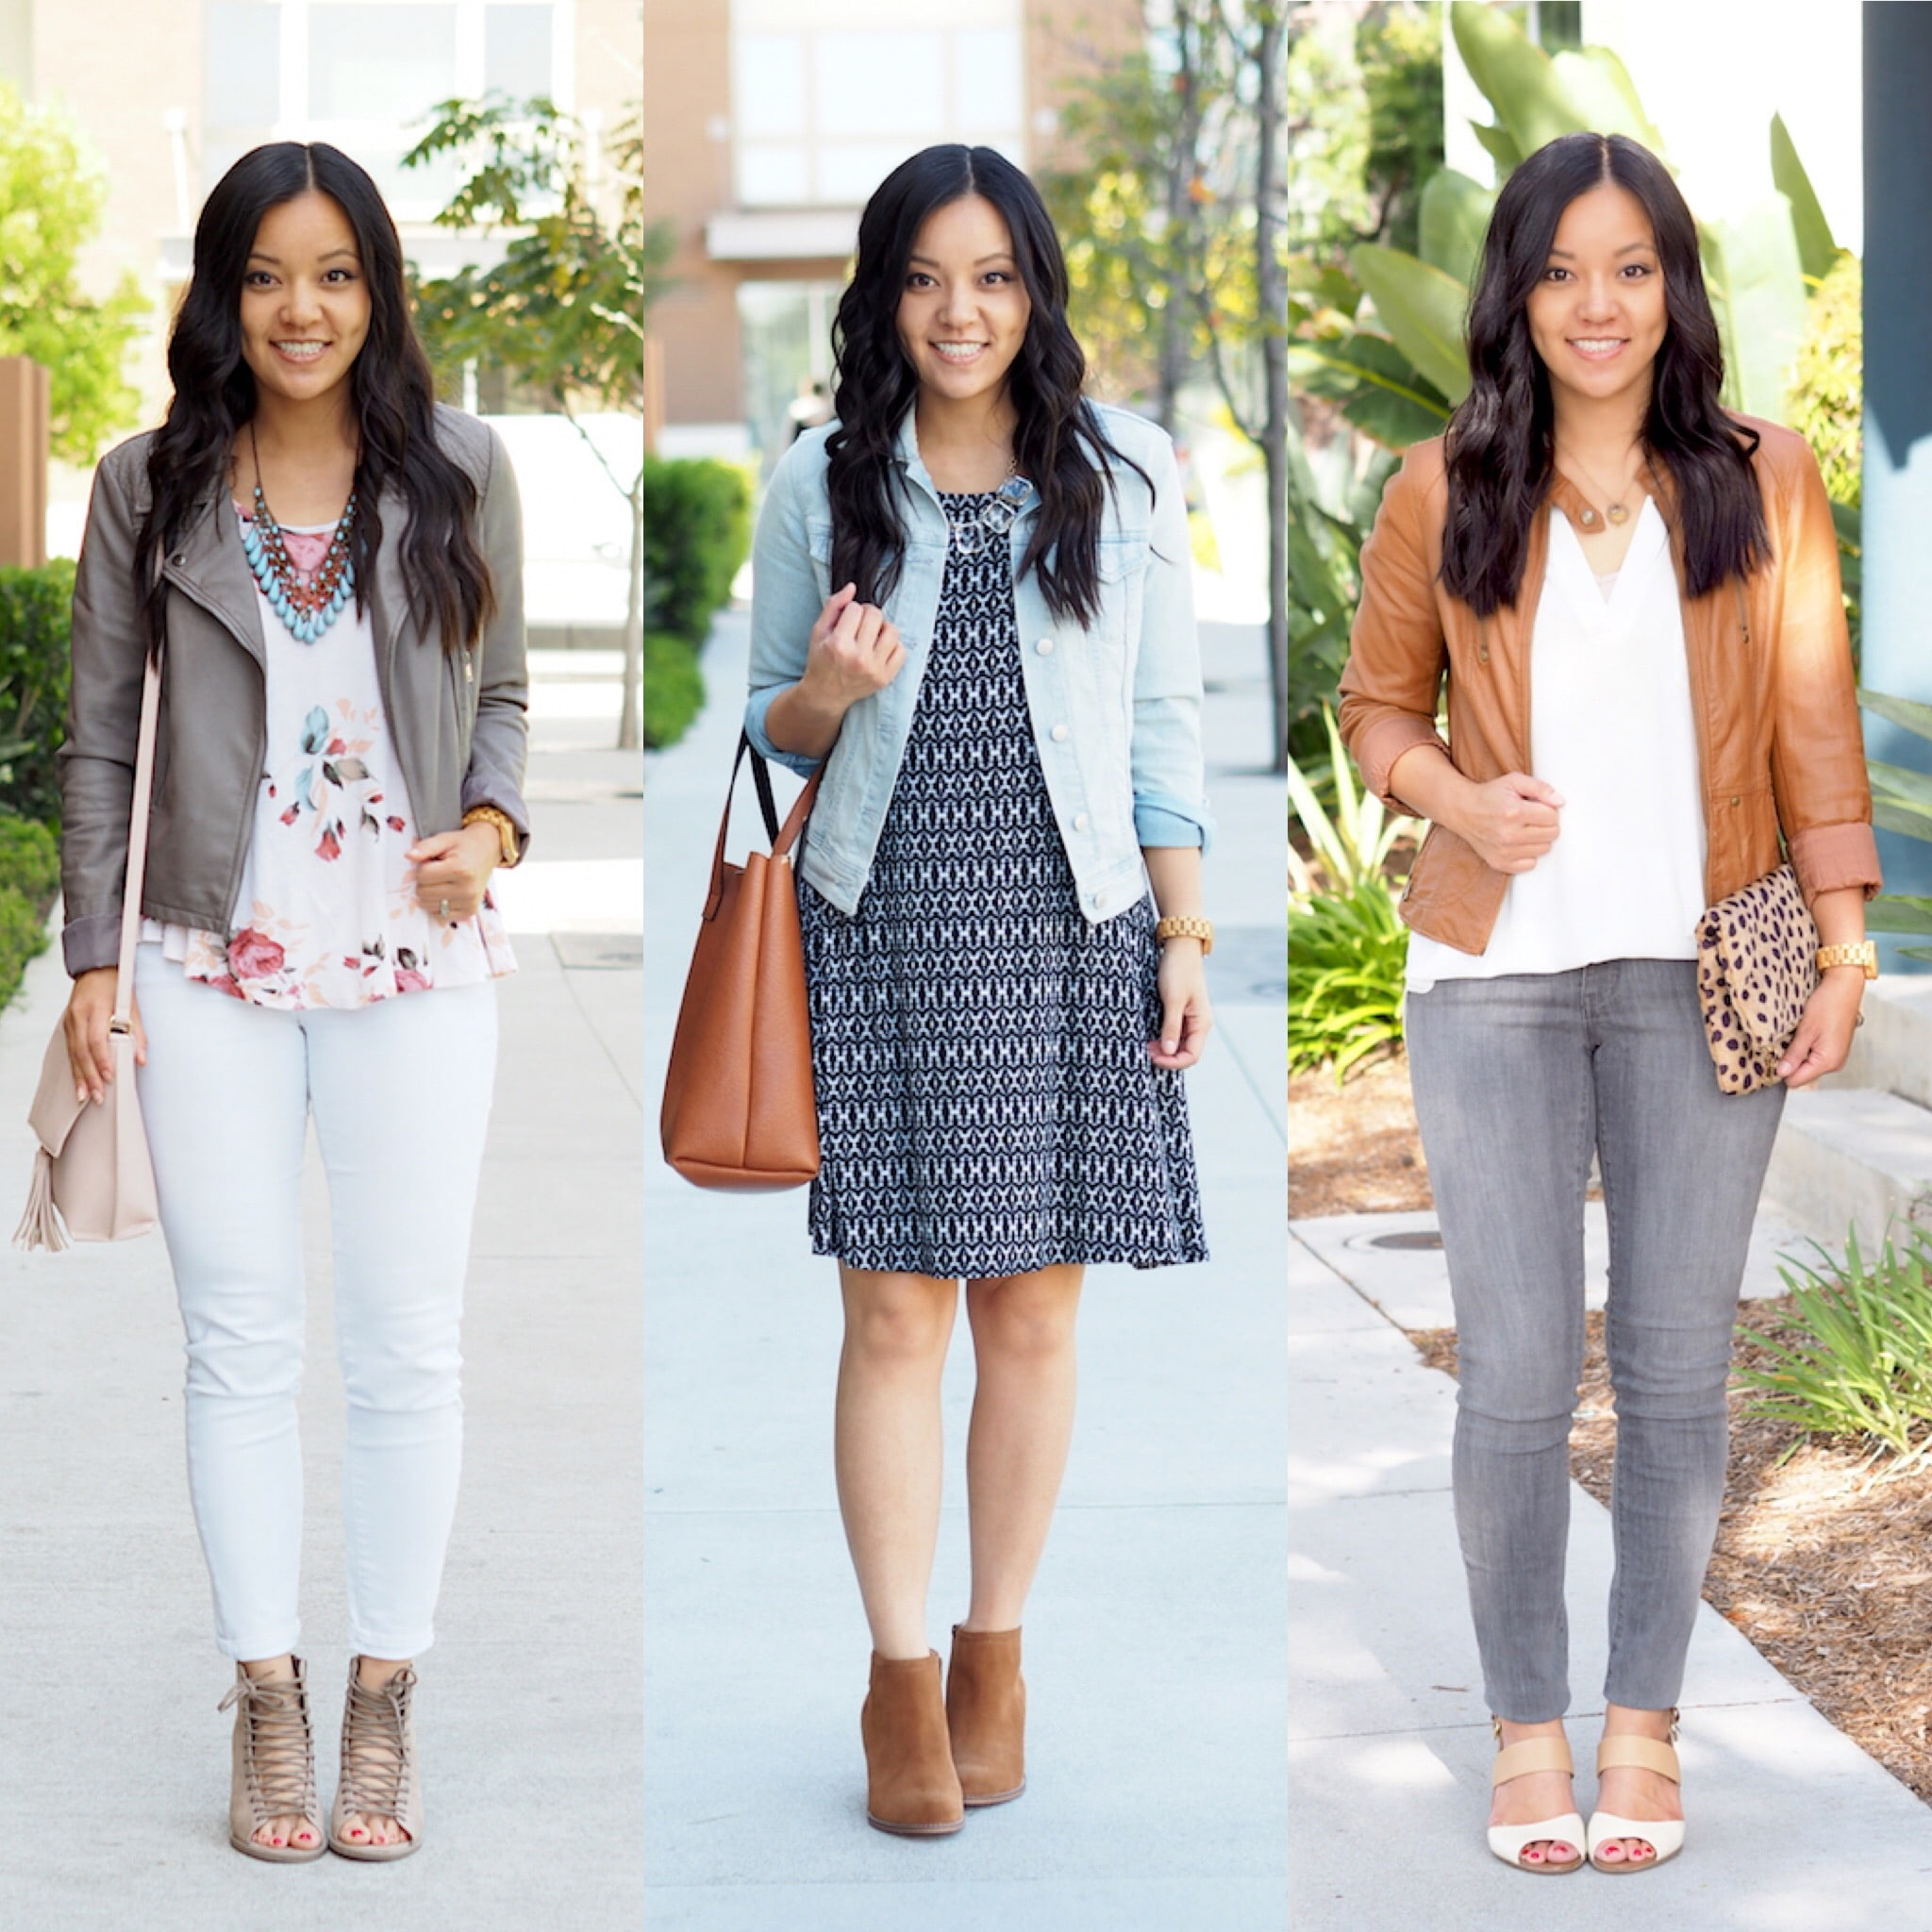 Spring Wardrobe Building Blocks for Dressy Casual Style: Faux Leather Moto Jackets and Denim Jacket